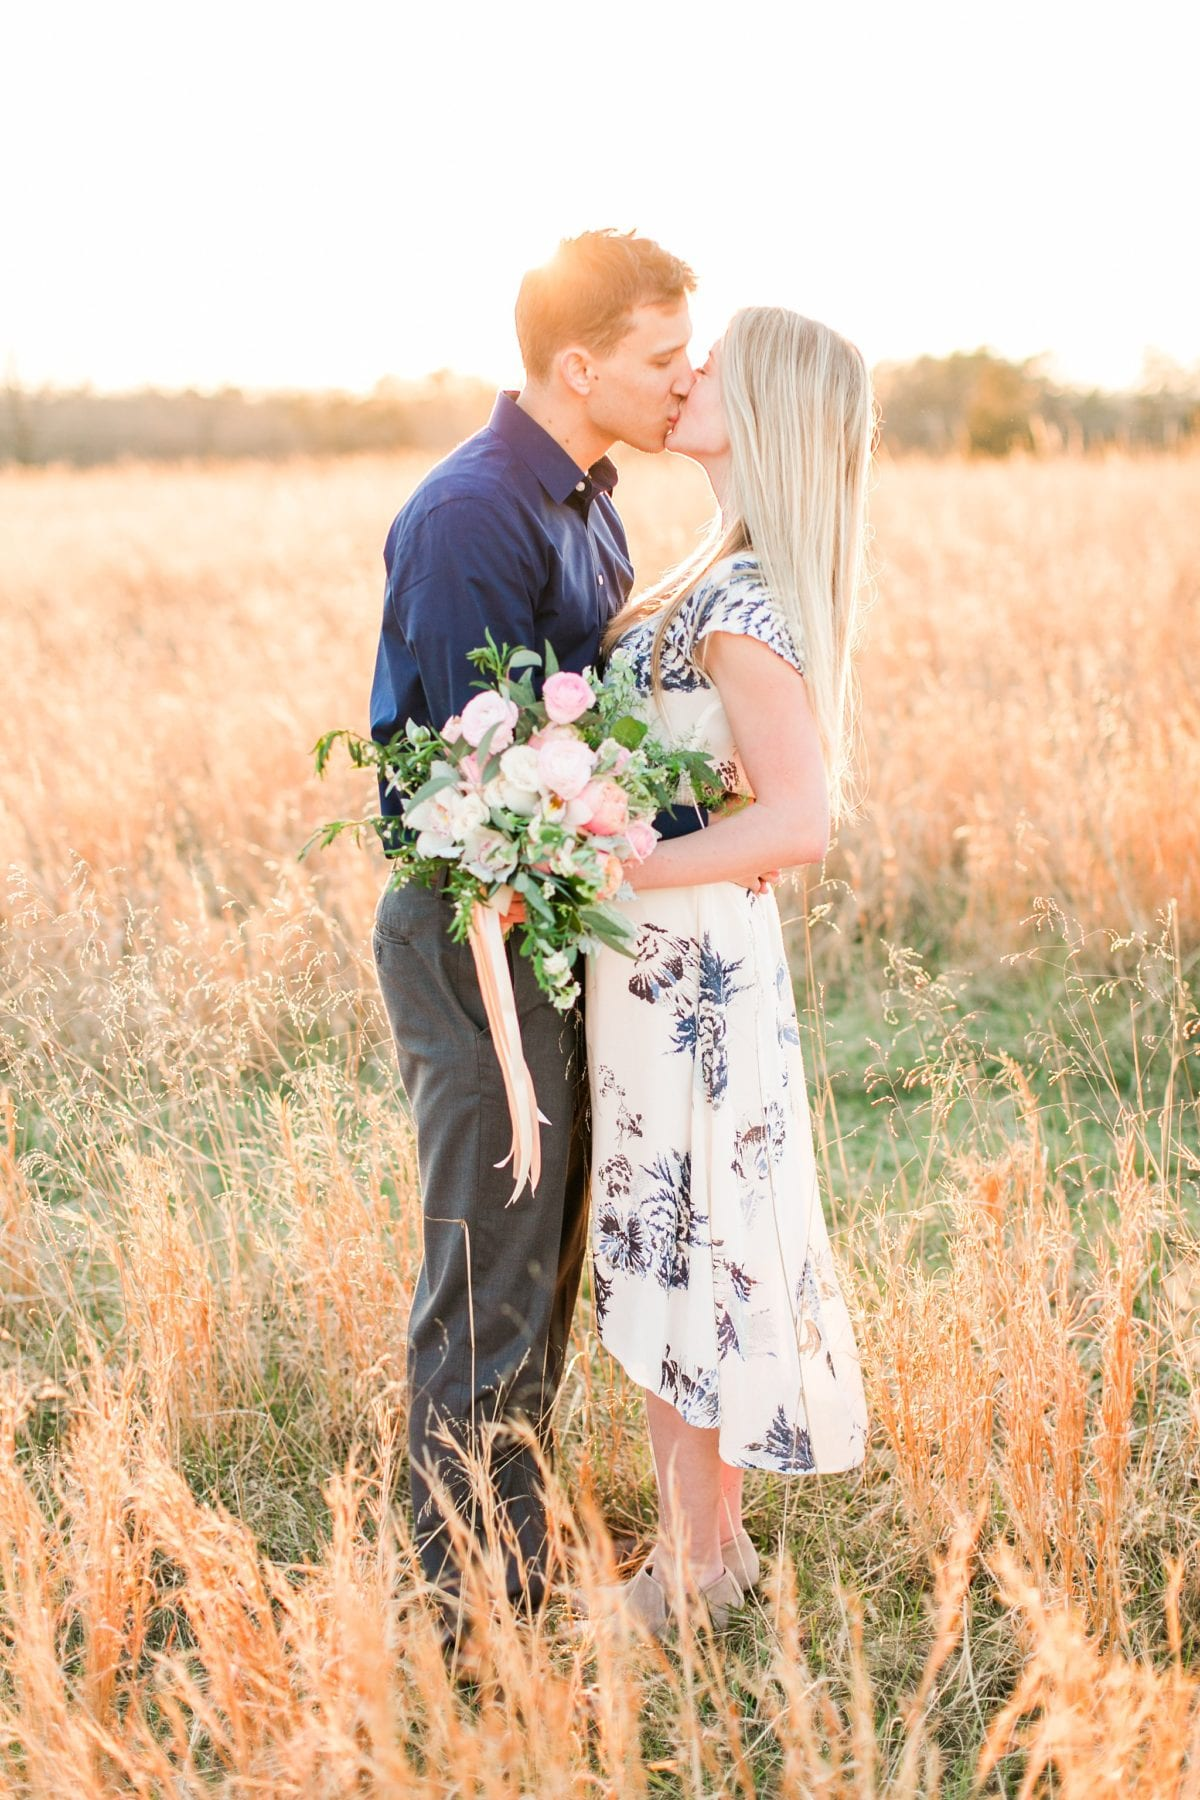 Manassas Battlefield Engagement Session Virginia Wedding Photographer Danielle & Charlie Megan Kelsey Photography-5933.jpg